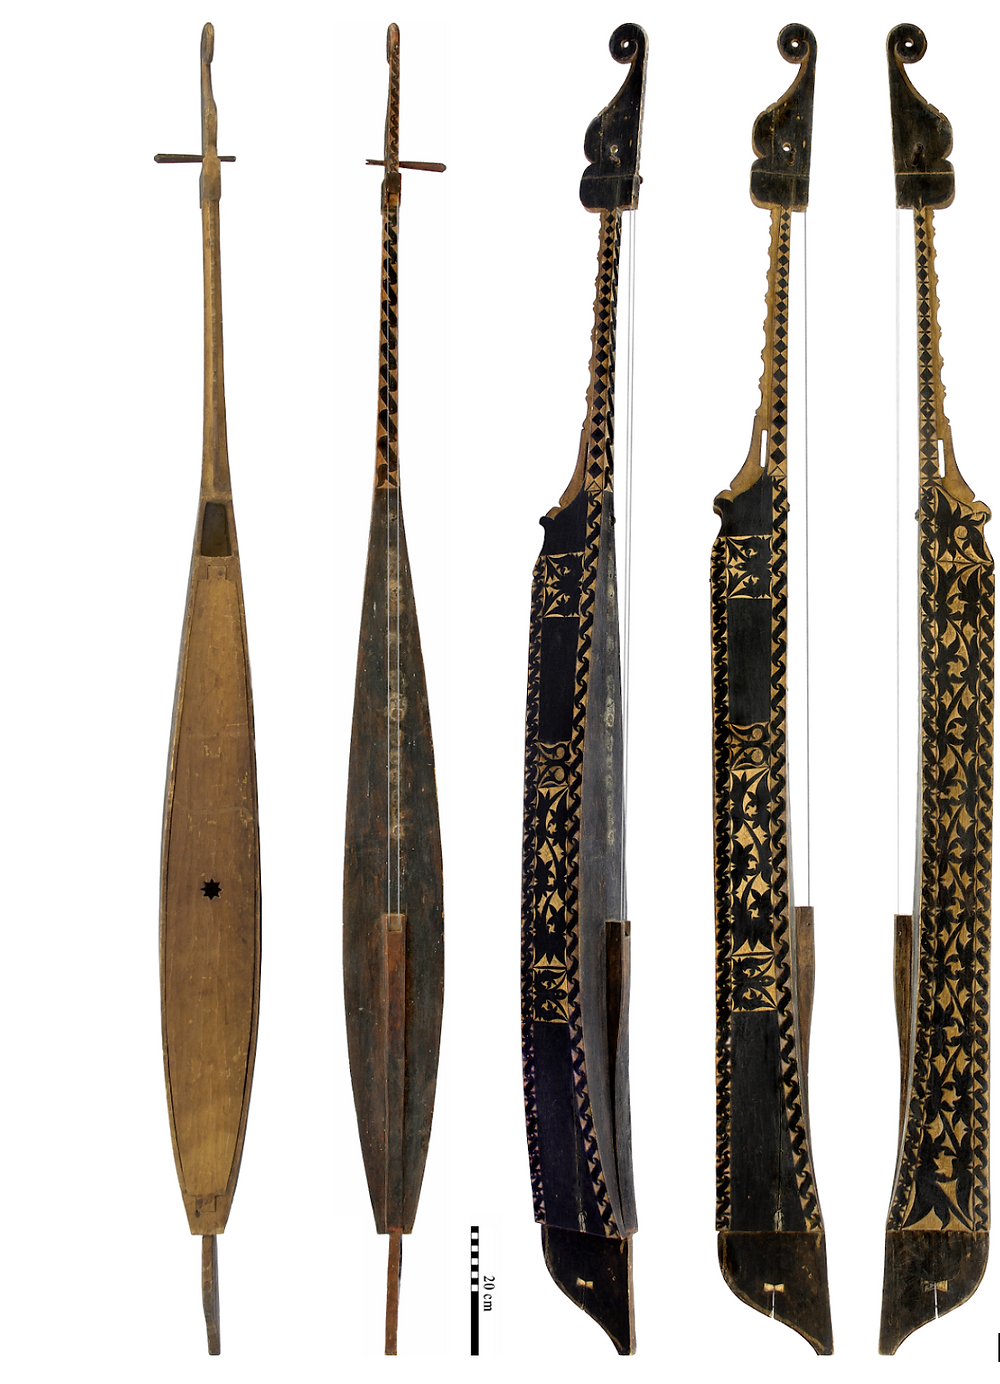 An antique kutiyapì of the Maguindanaon made around the year 1900. Originally from the collection of Stanford University Museum, now part of the private collection of Hans Brandeis.